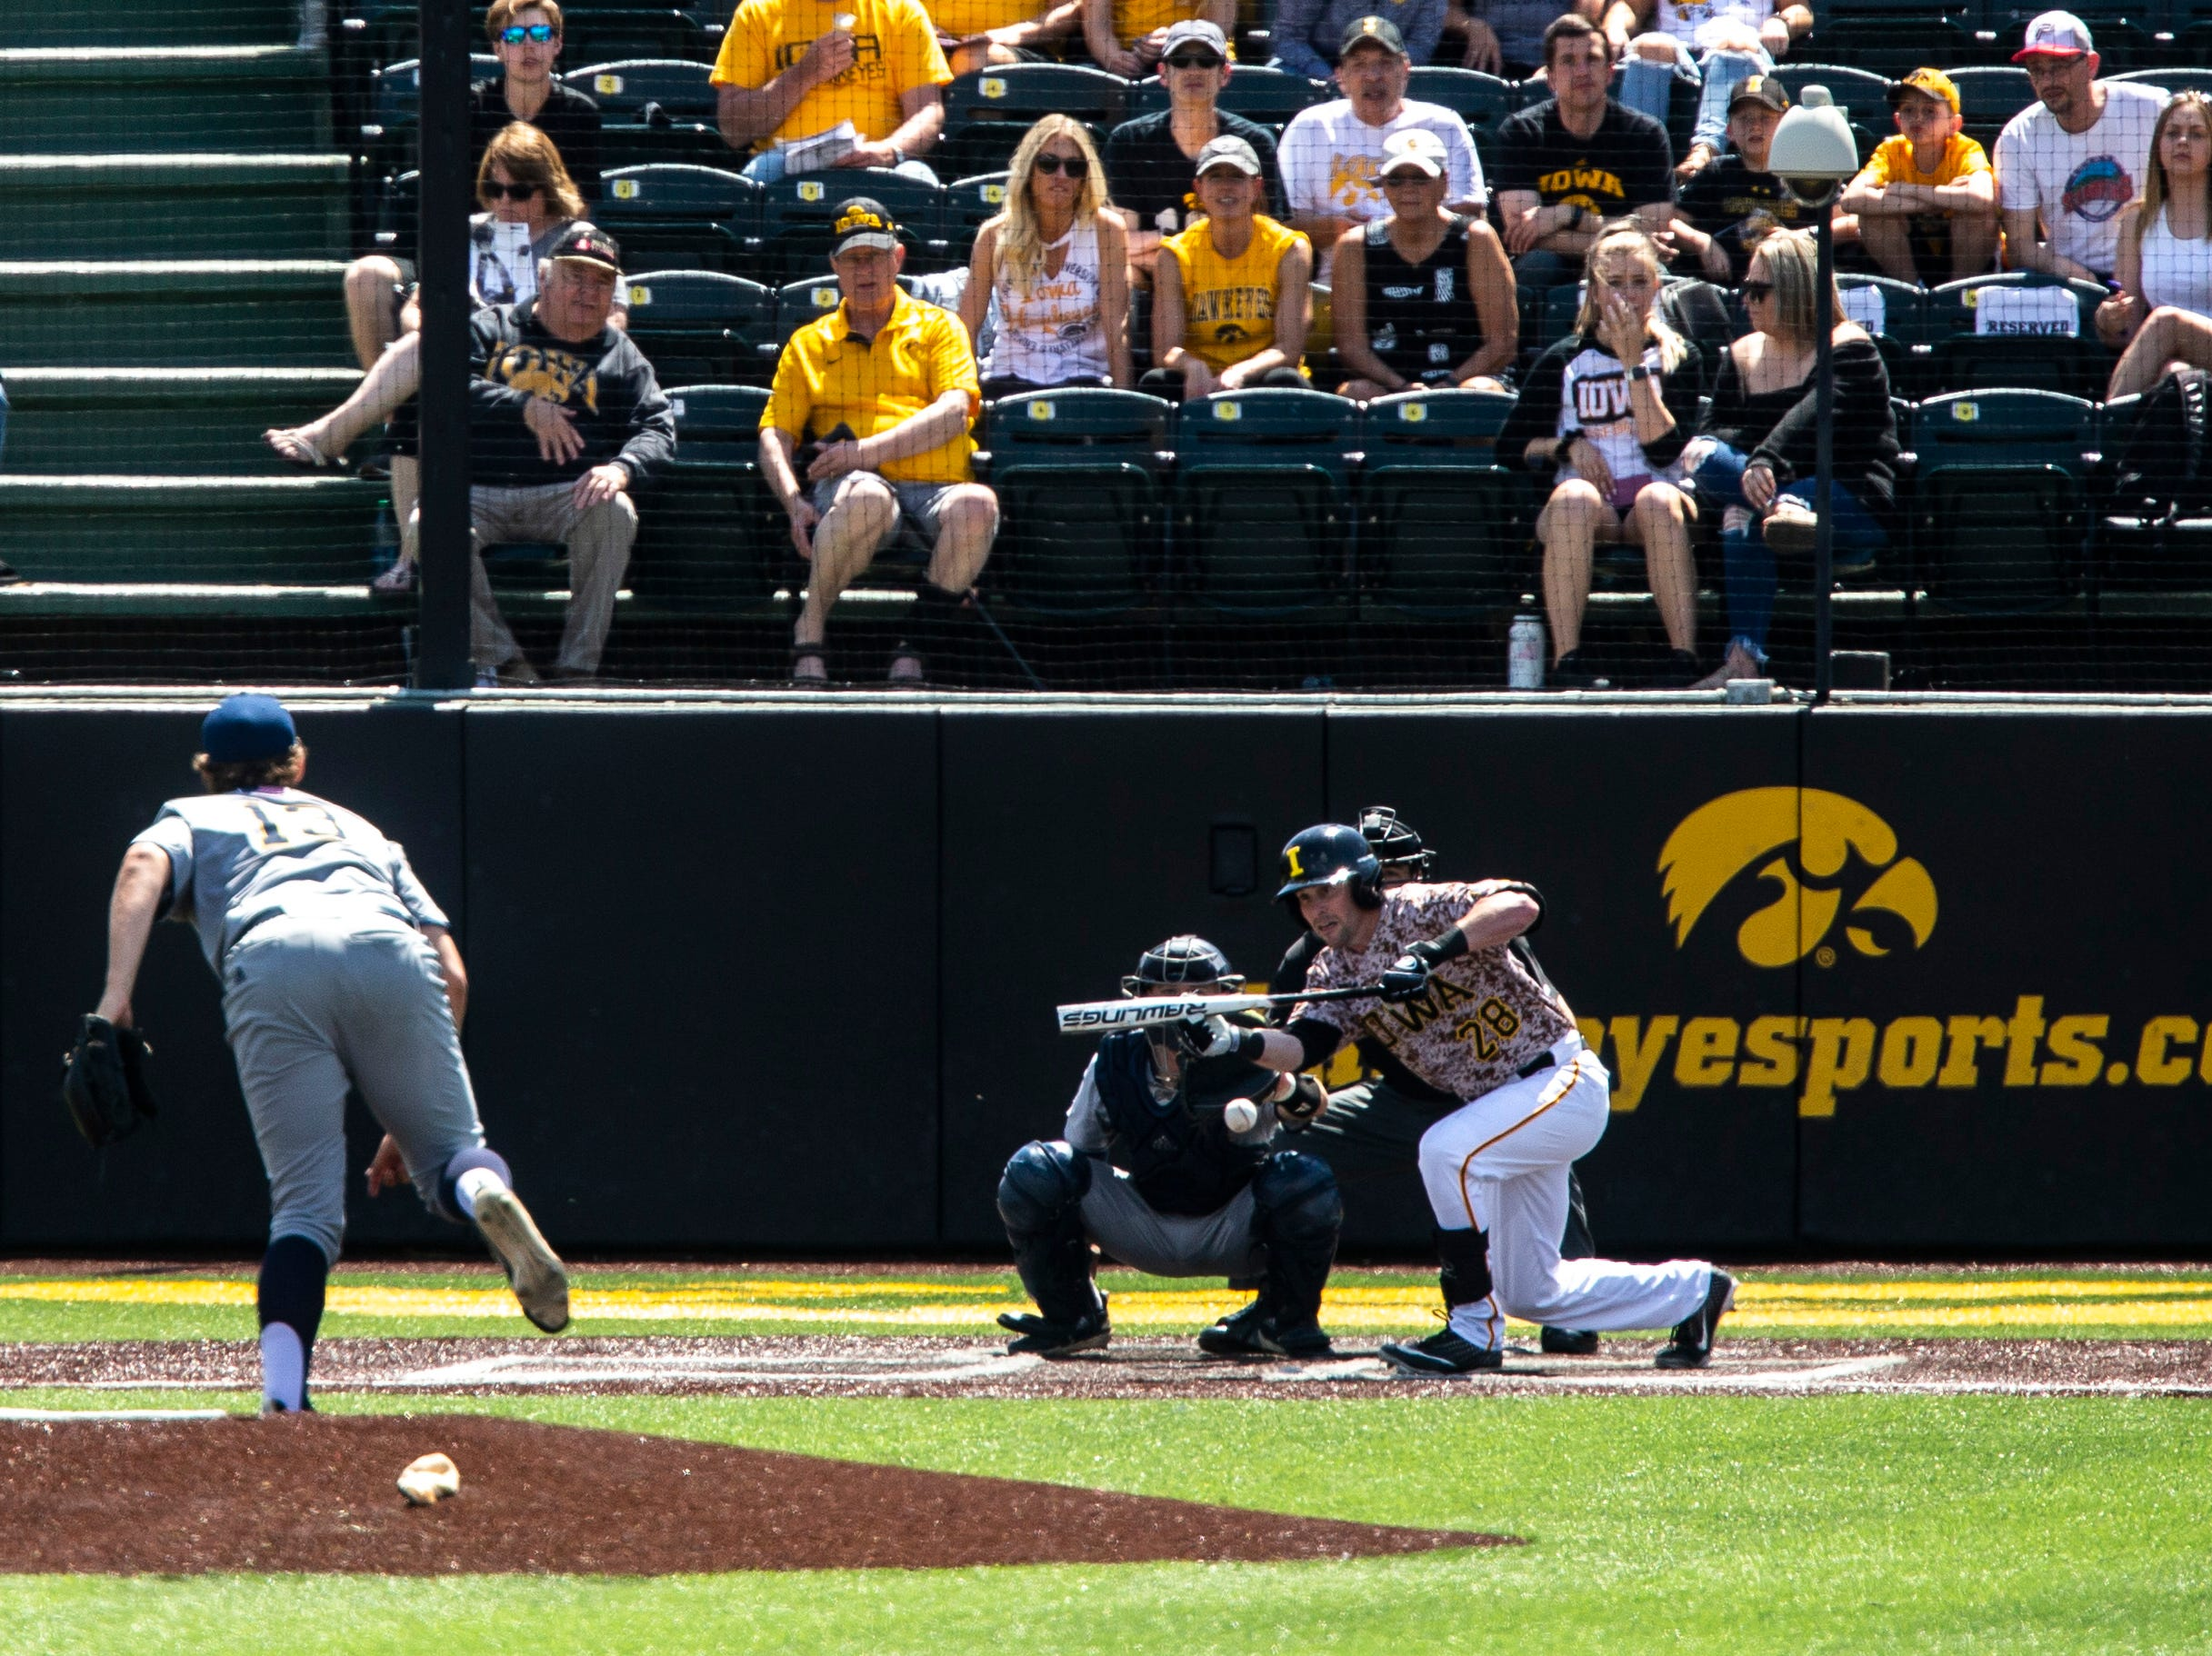 Iowa's Chris Whelan (28) bunts during a NCAA non conference baseball game, Sunday, May 5, 2019, at Duane Banks Field in Iowa City, Iowa.